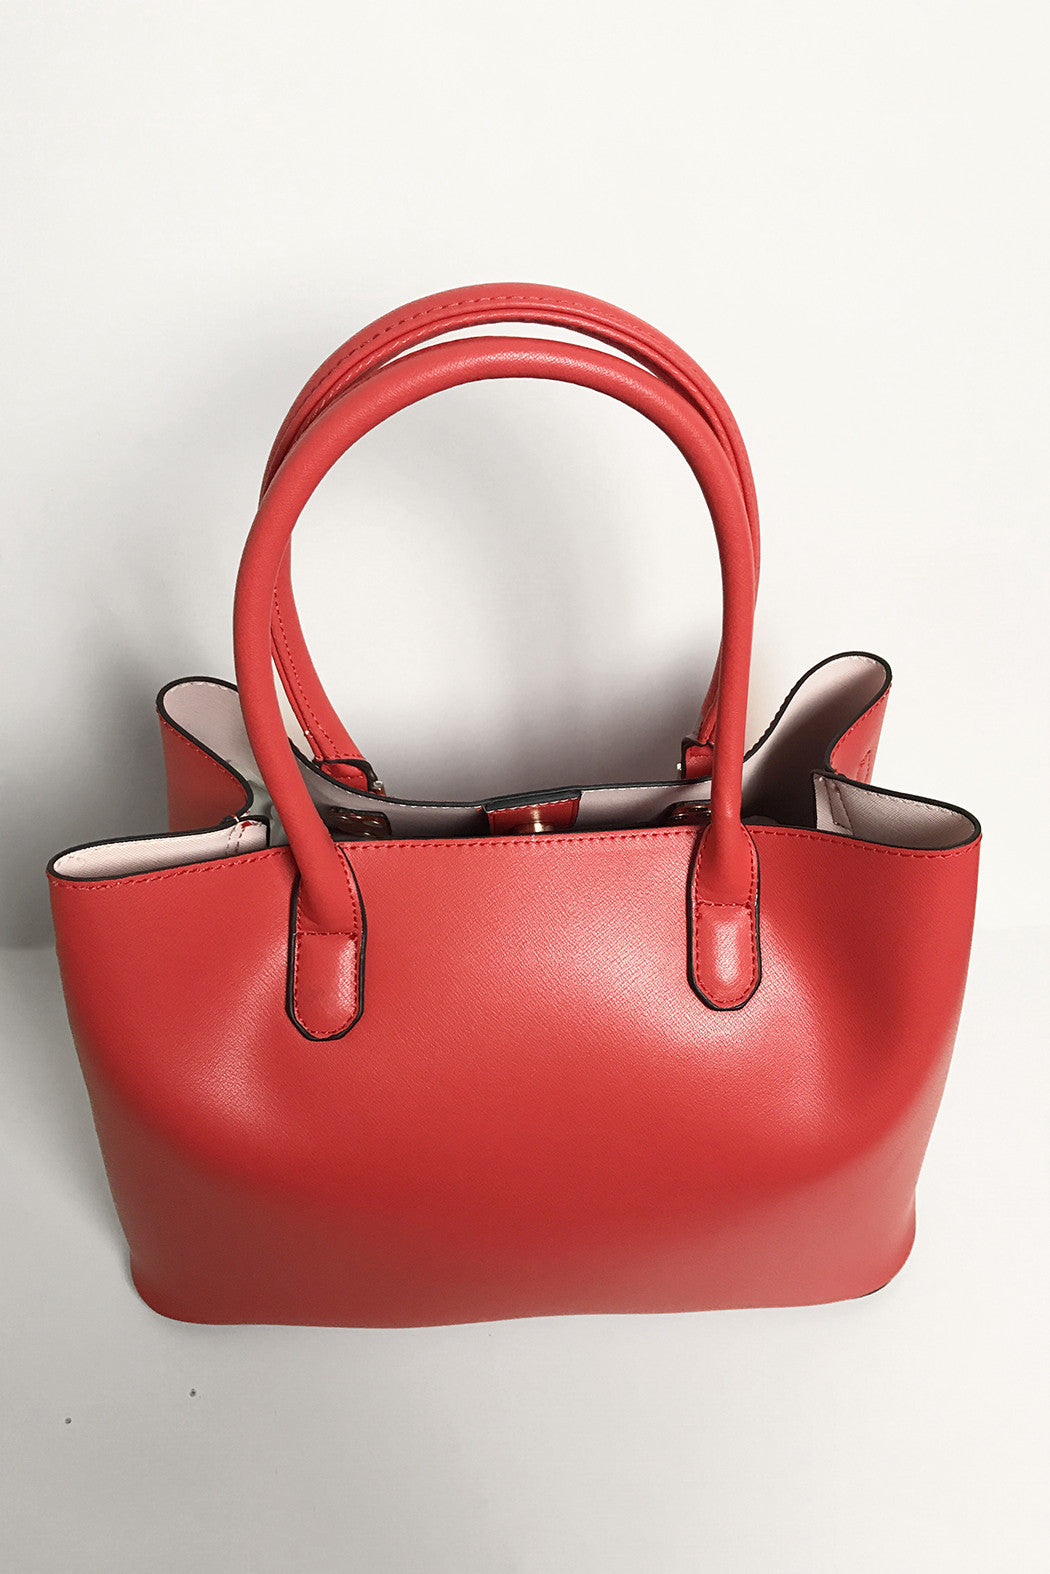 Candy Apple Xlarge Satchel - Snatched